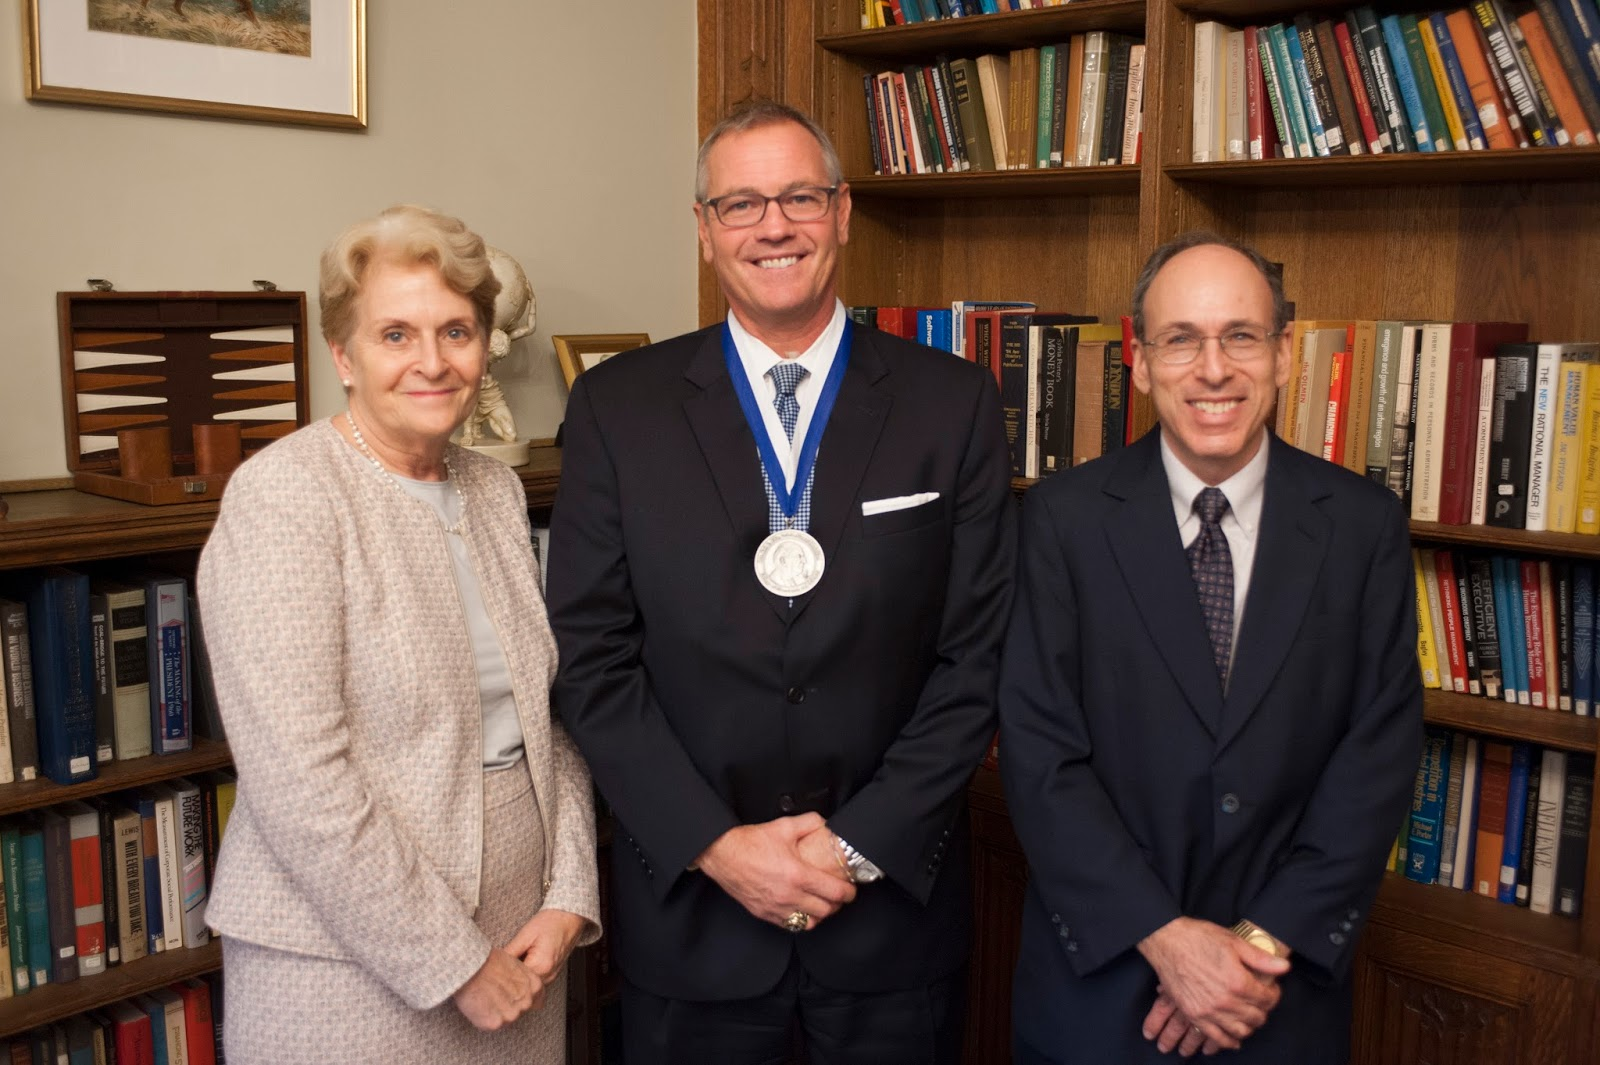 villanova english villanova english major brian harrington  dr adele lindenmeyr dean of the college of liberal arts and sciences brian harrington dr evan radcliffe english department chair